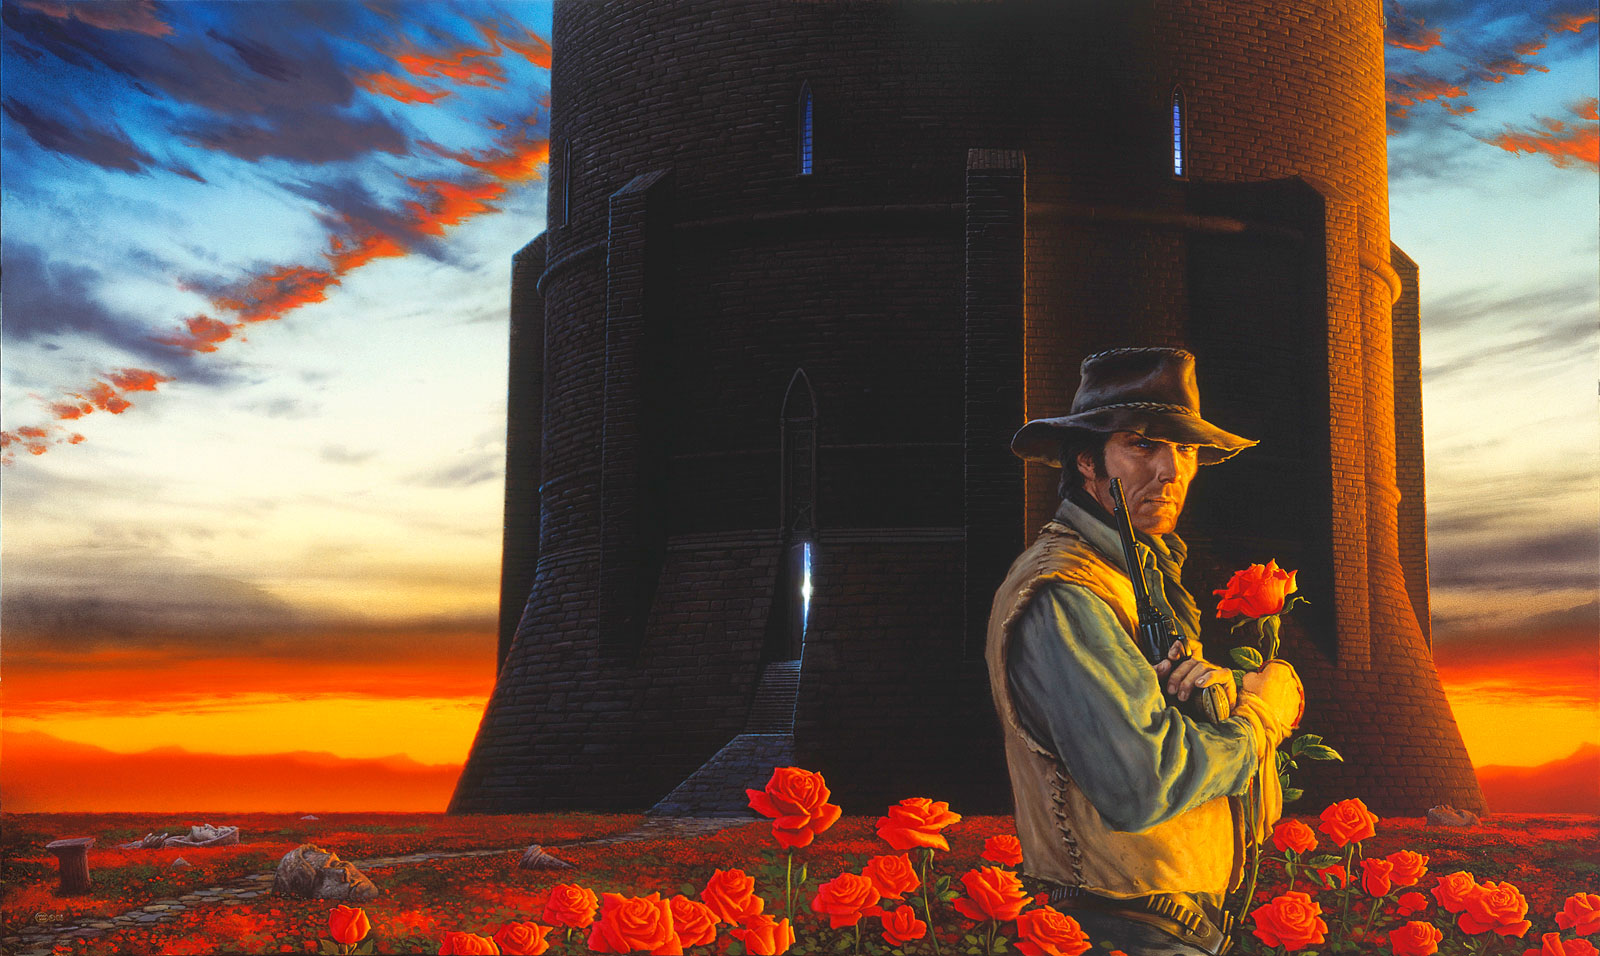 The Gunslinger and the Rose